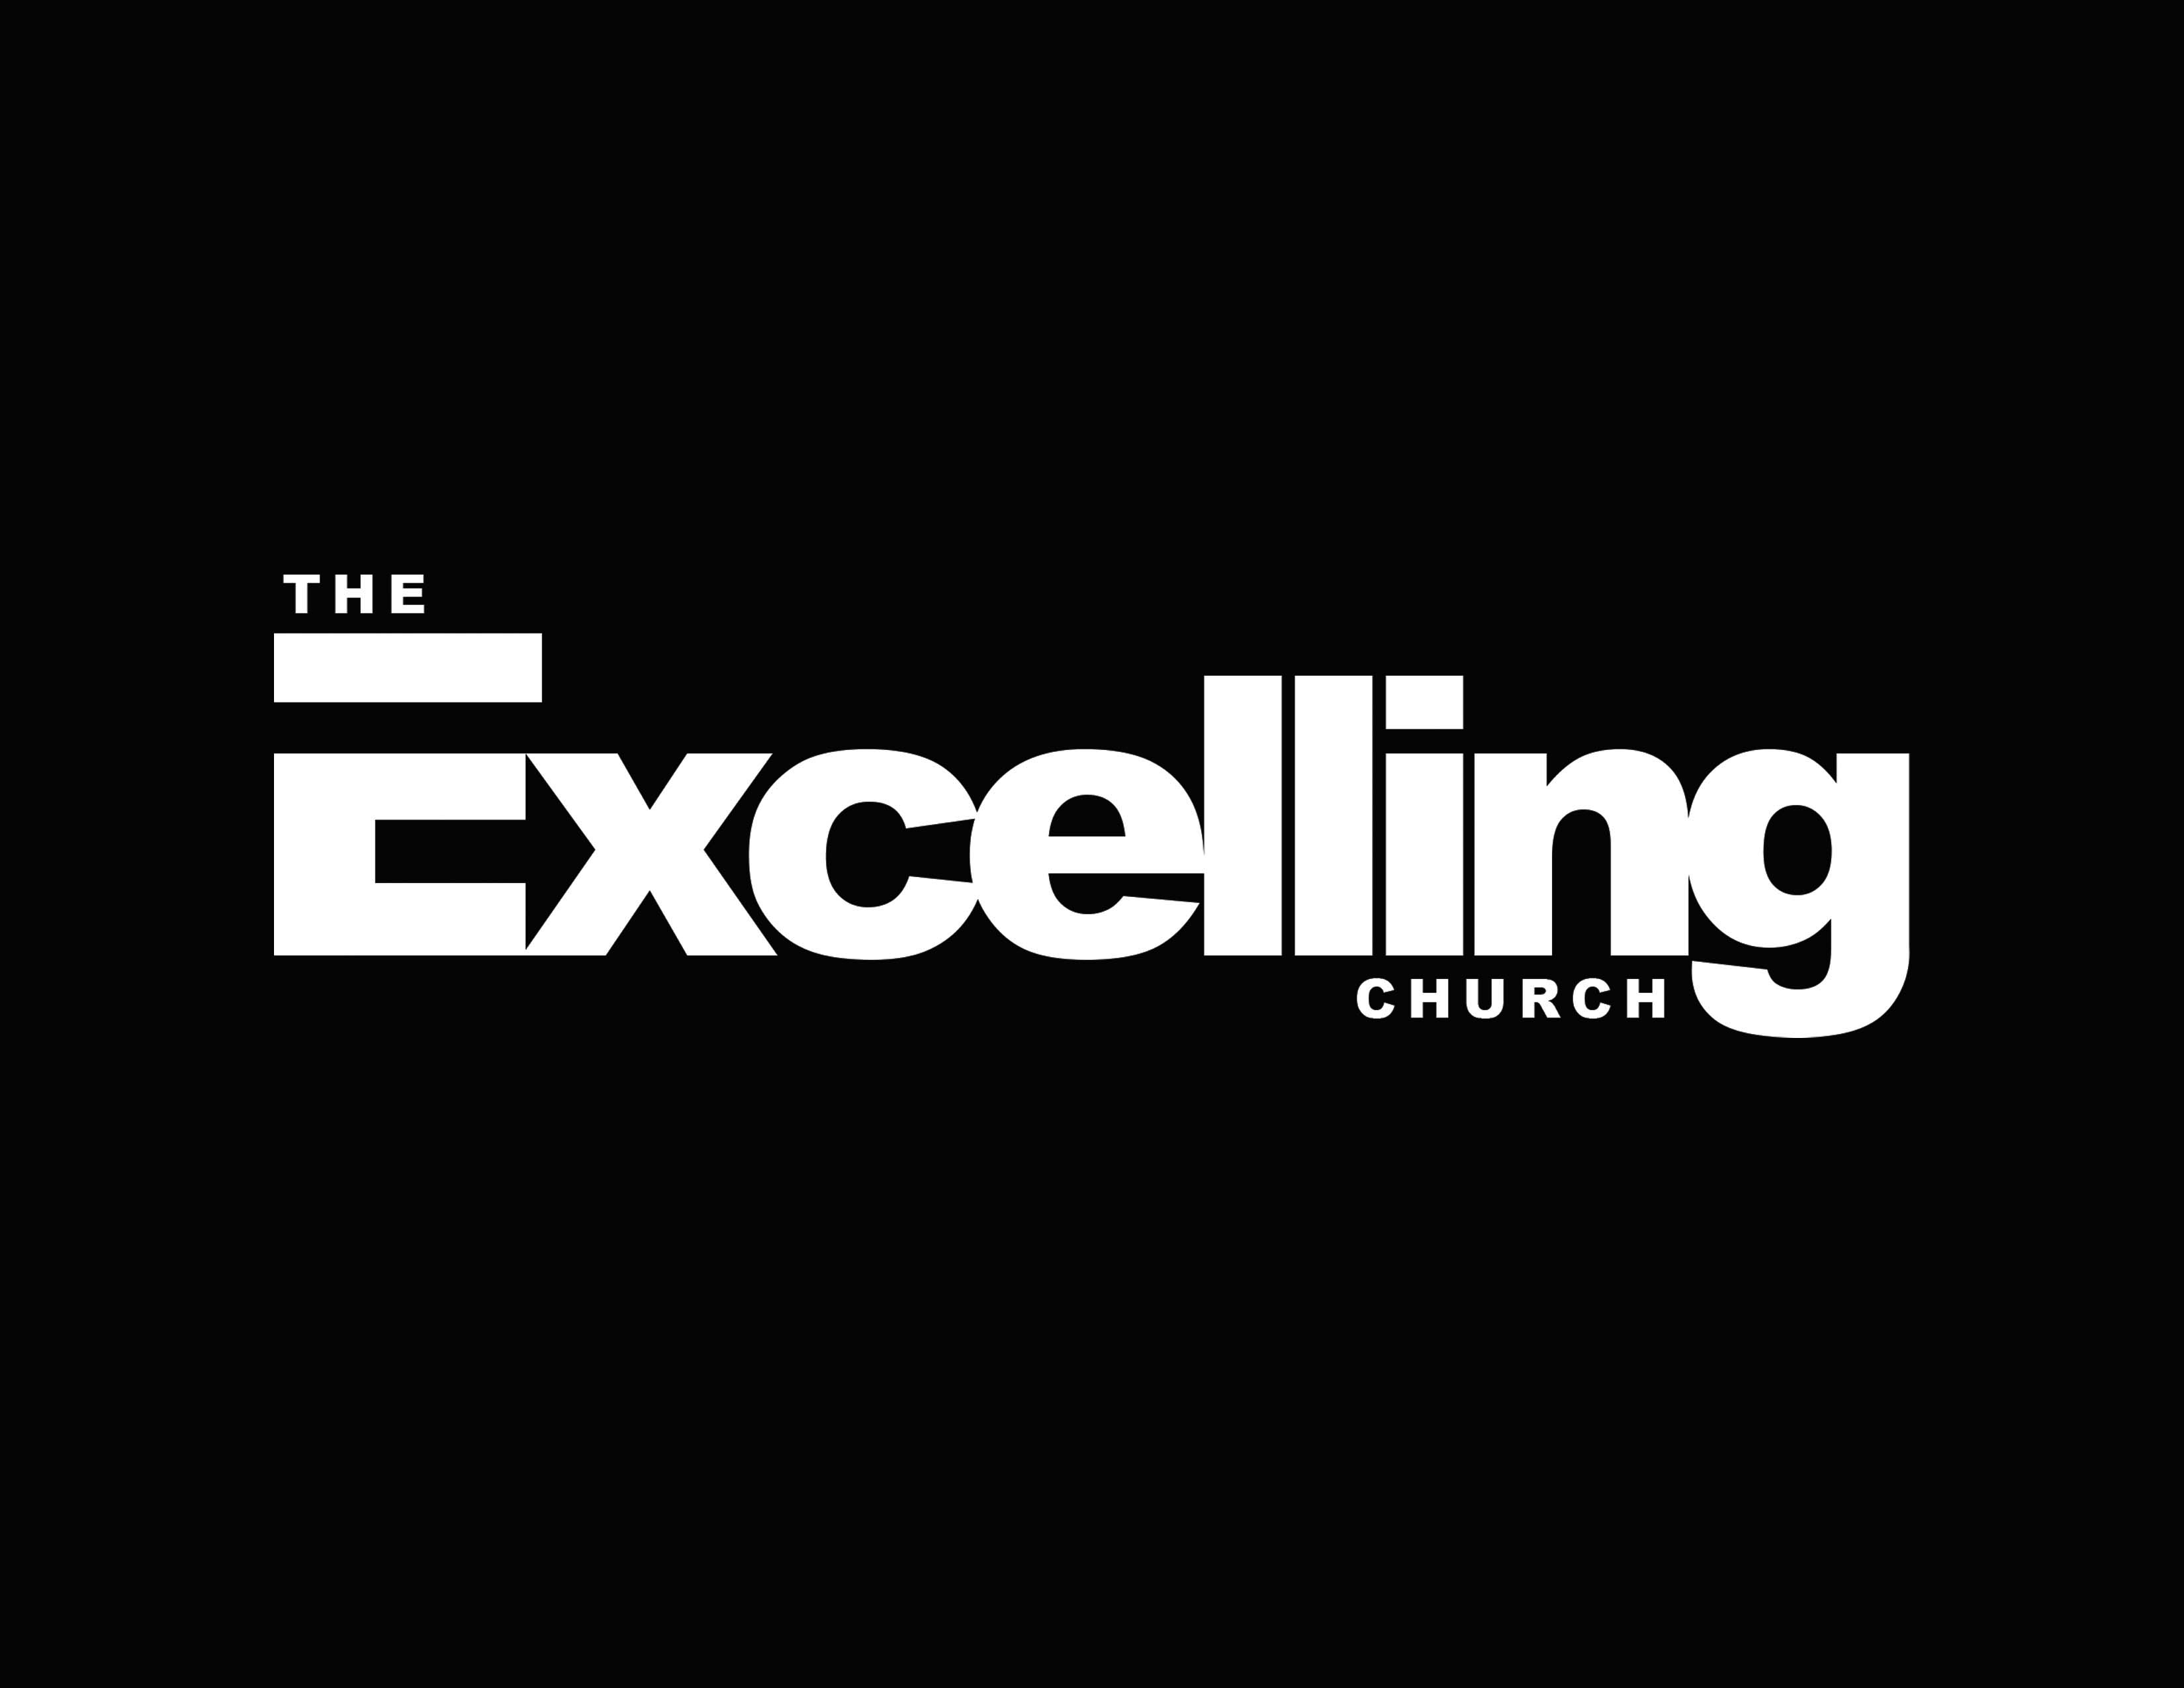 The Excelling Church